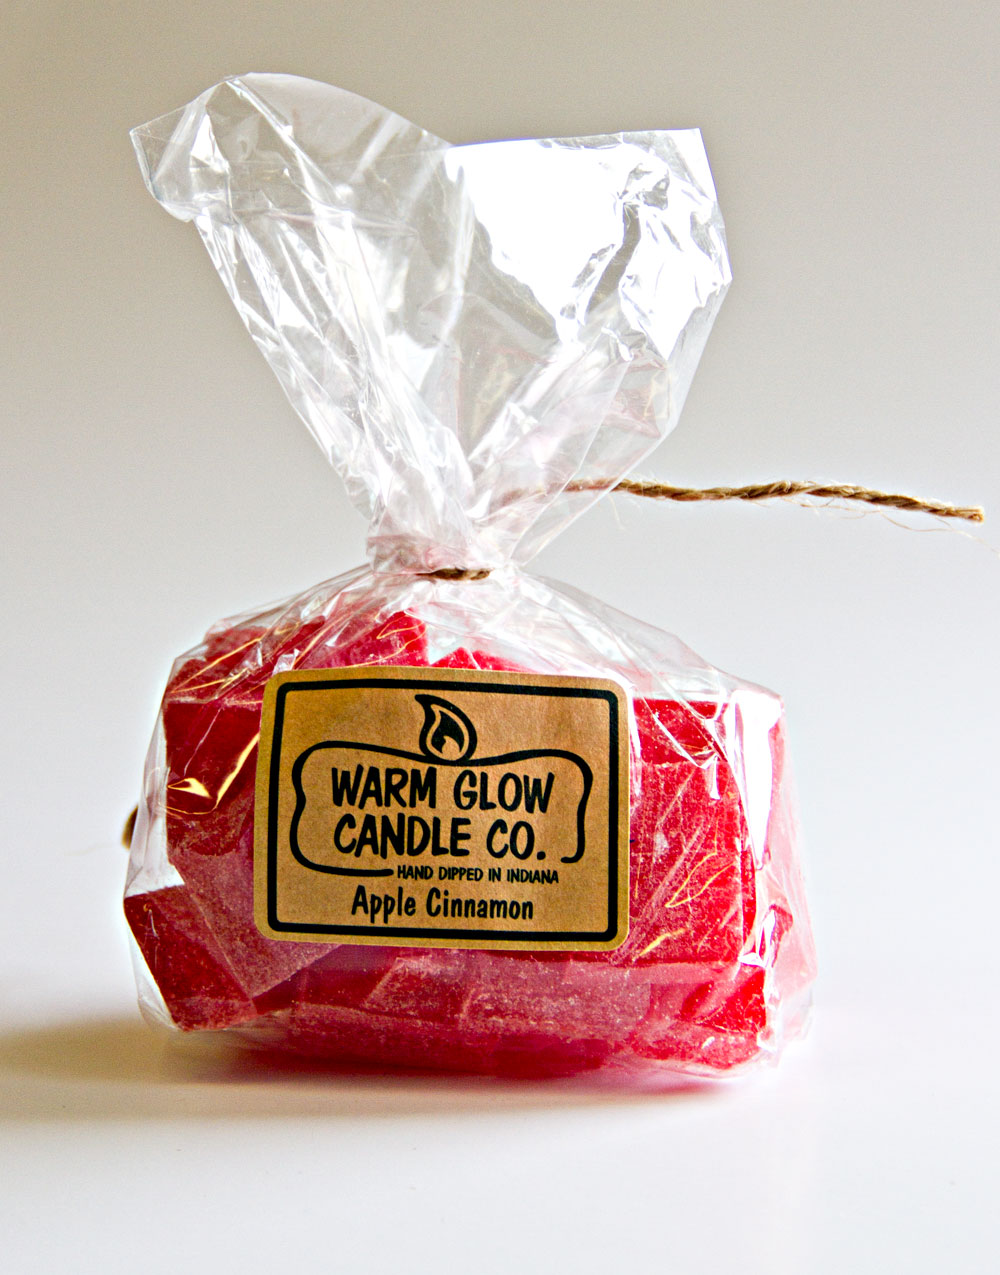 Apple Cinnamon Warm Glow Scented Wax Chips